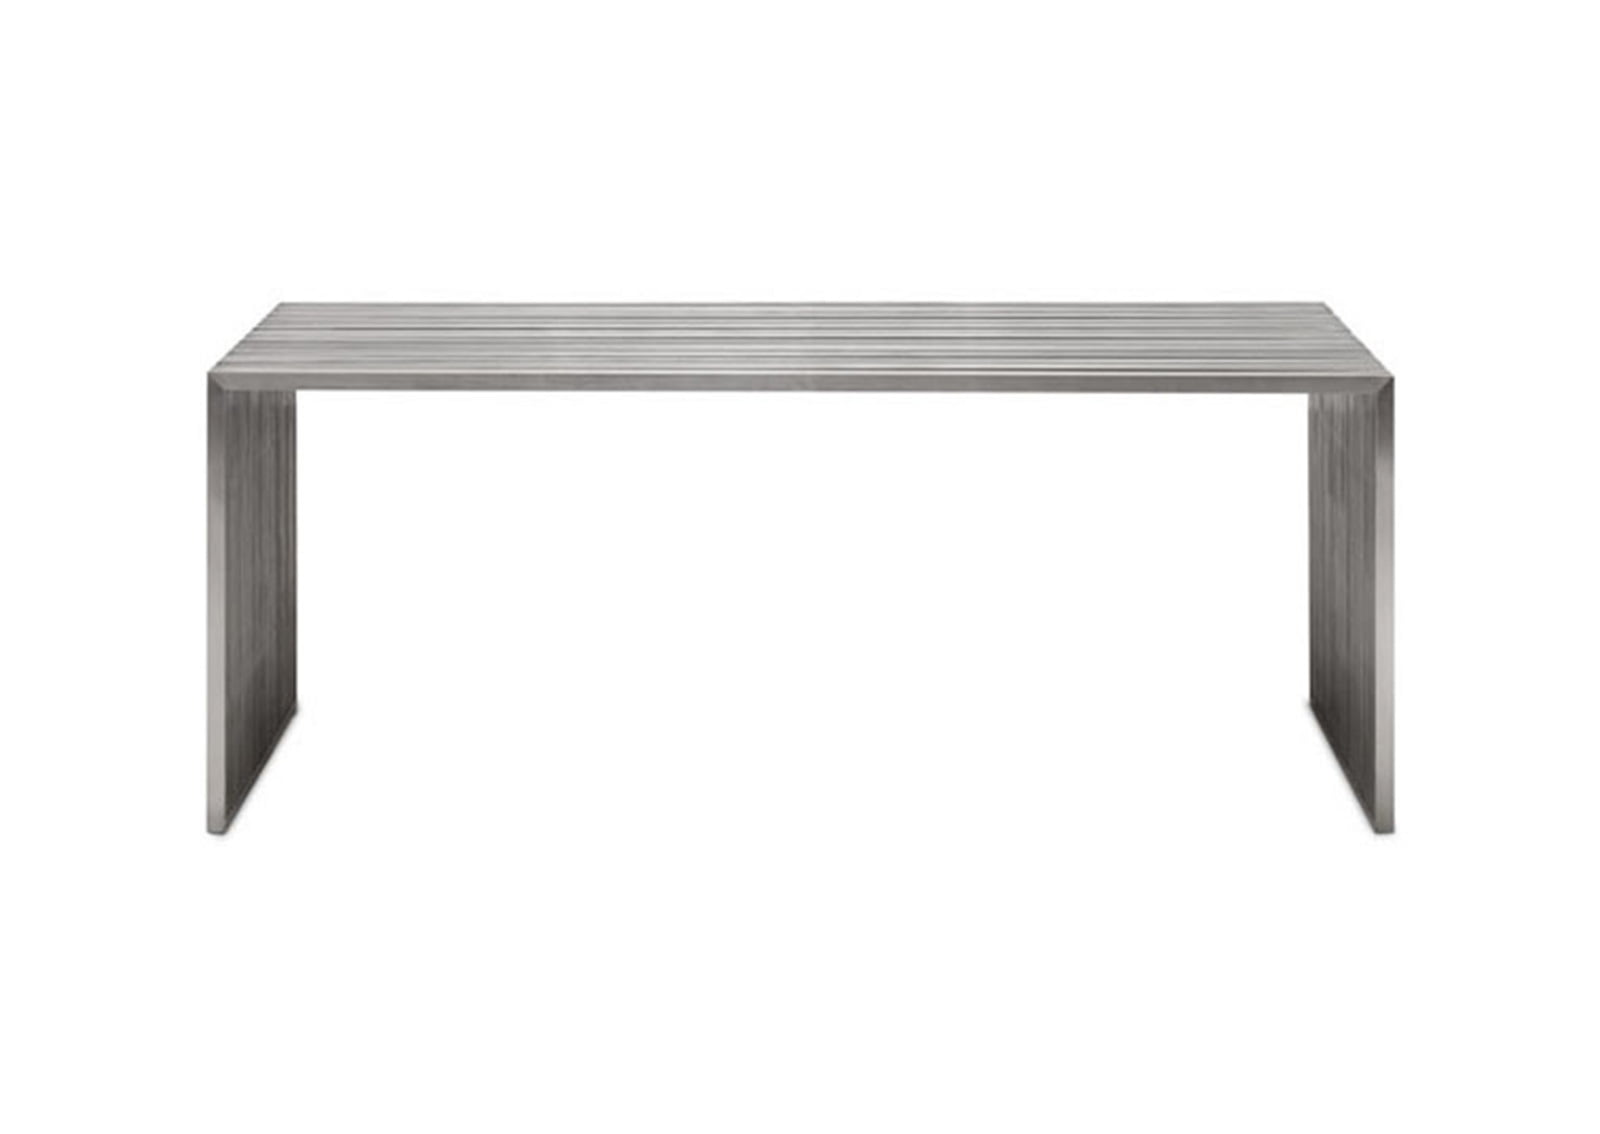 Novel dining table brushed stainless steel furnishplus for Stainless steel dining table